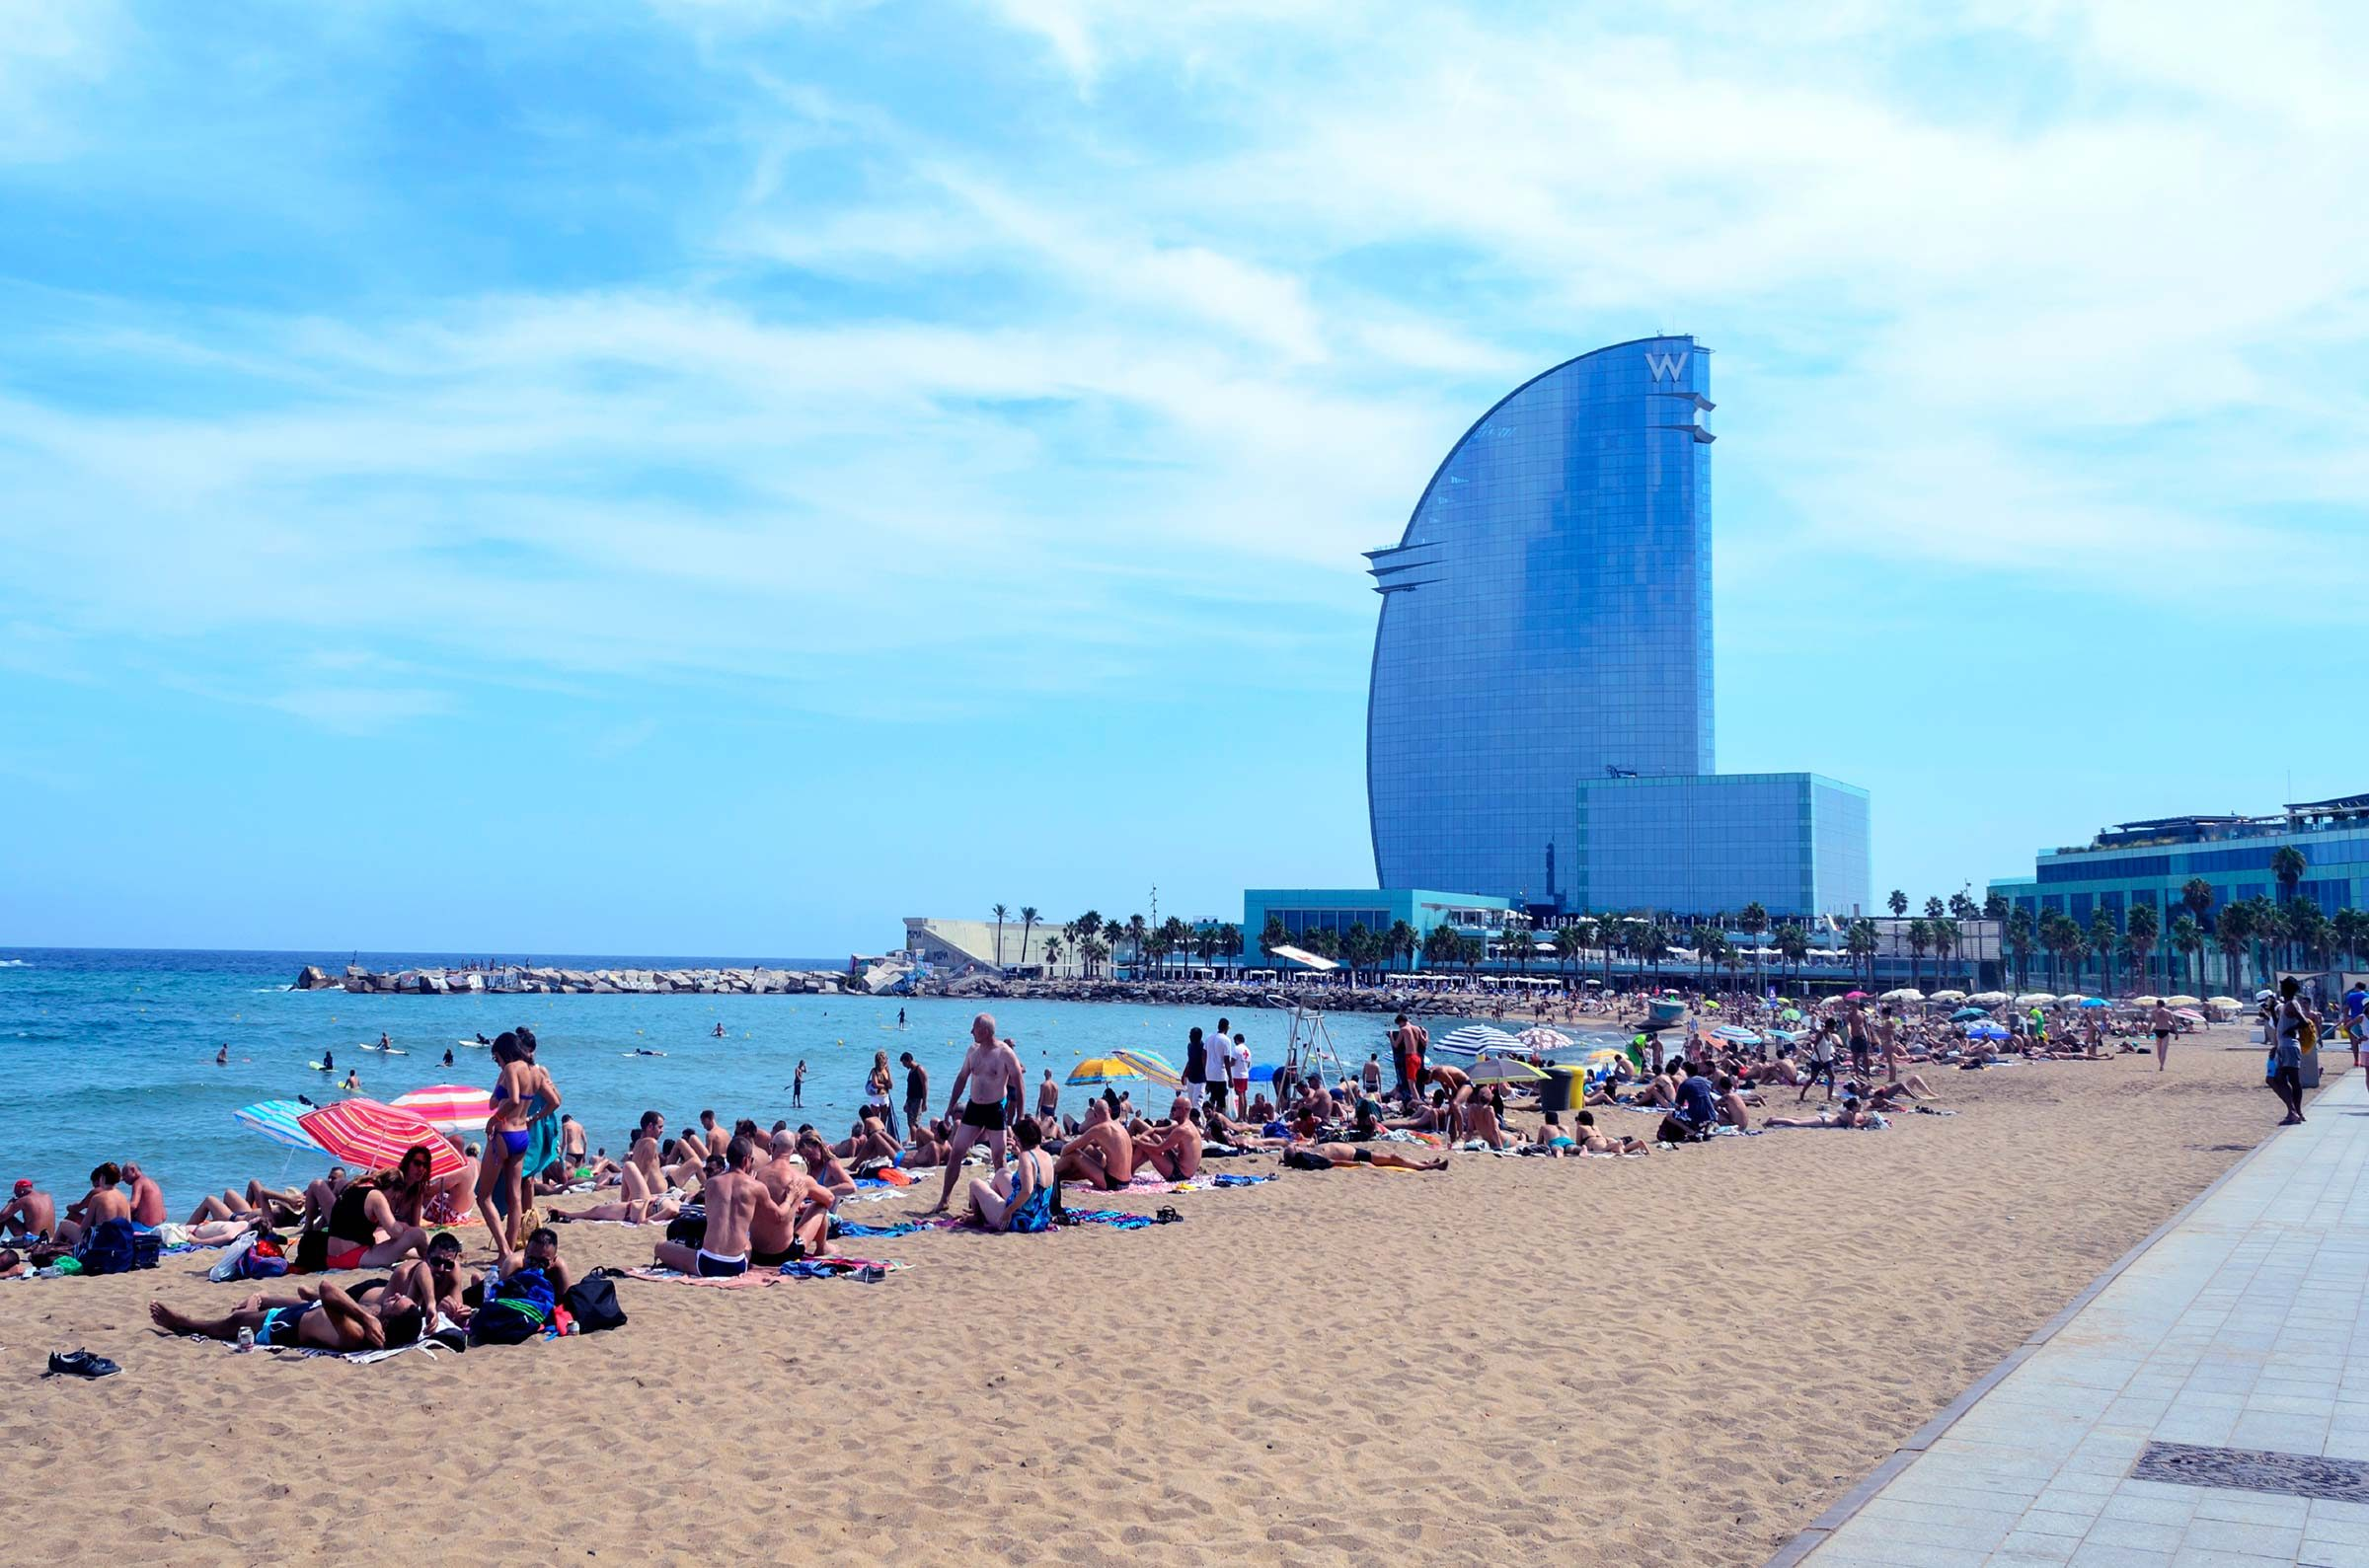 12. Bathing suits are for the beach only in Barcelona